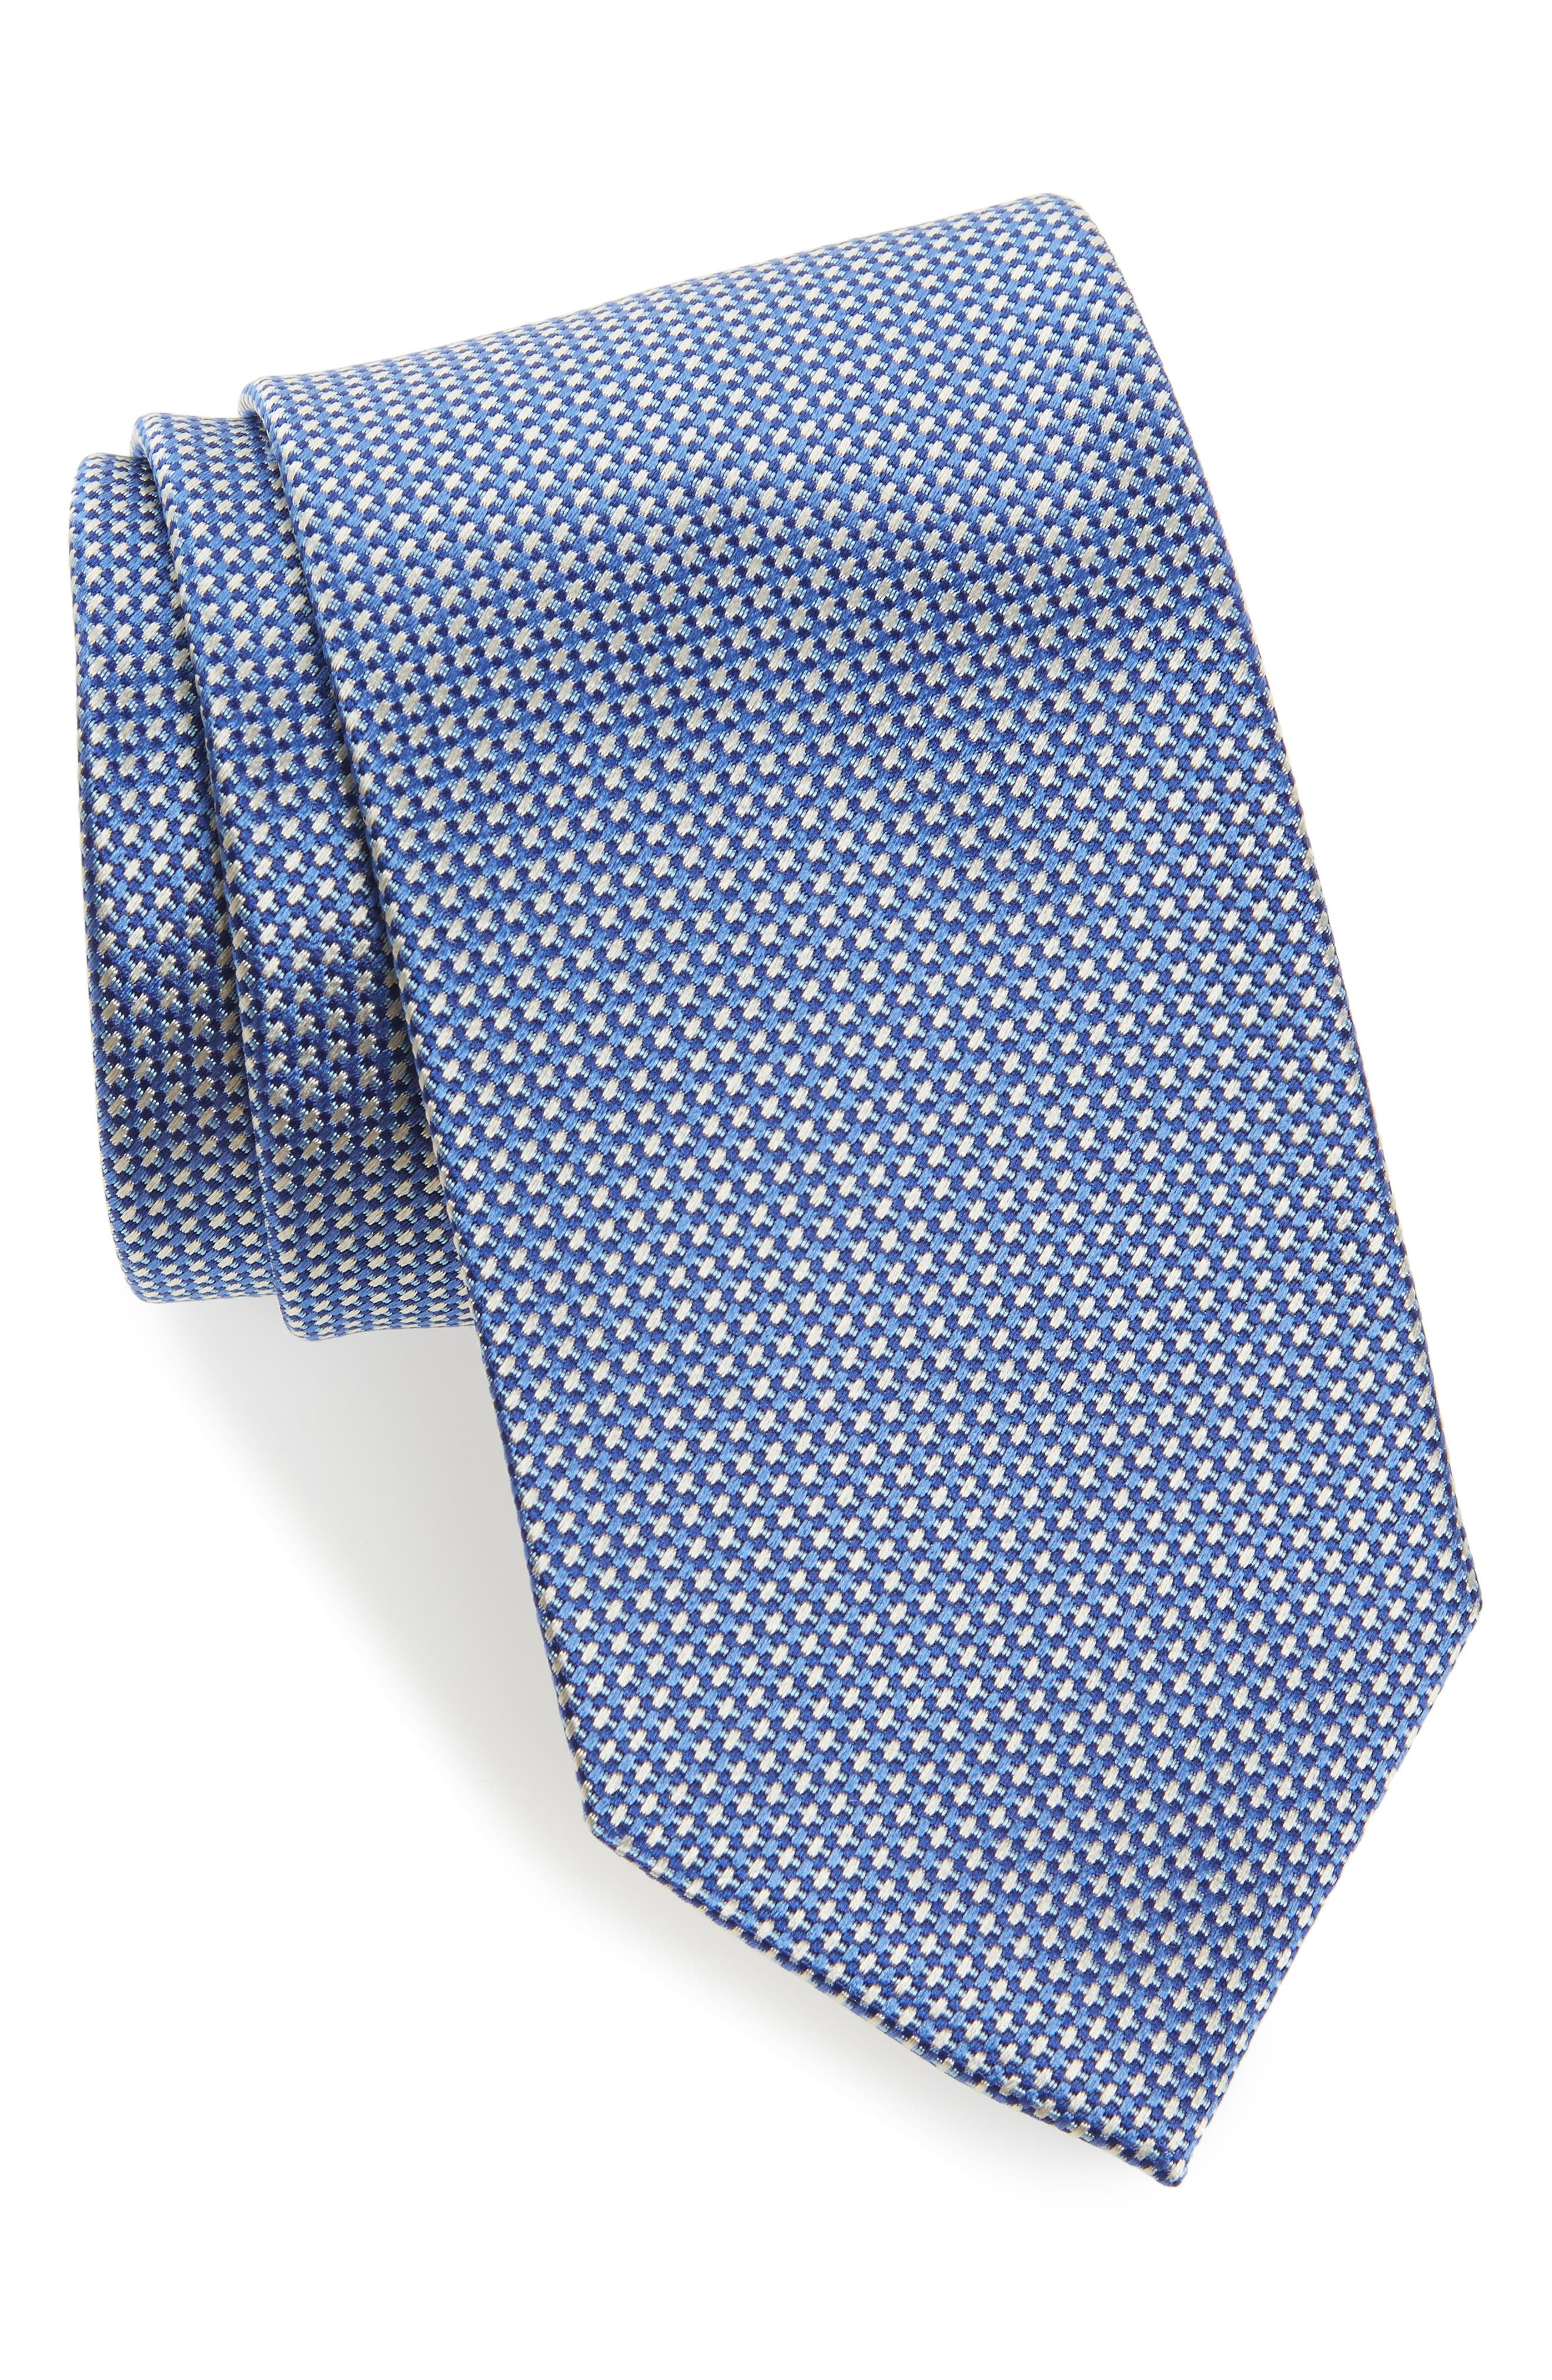 Geometric Silk Tie,                         Main,                         color, 423